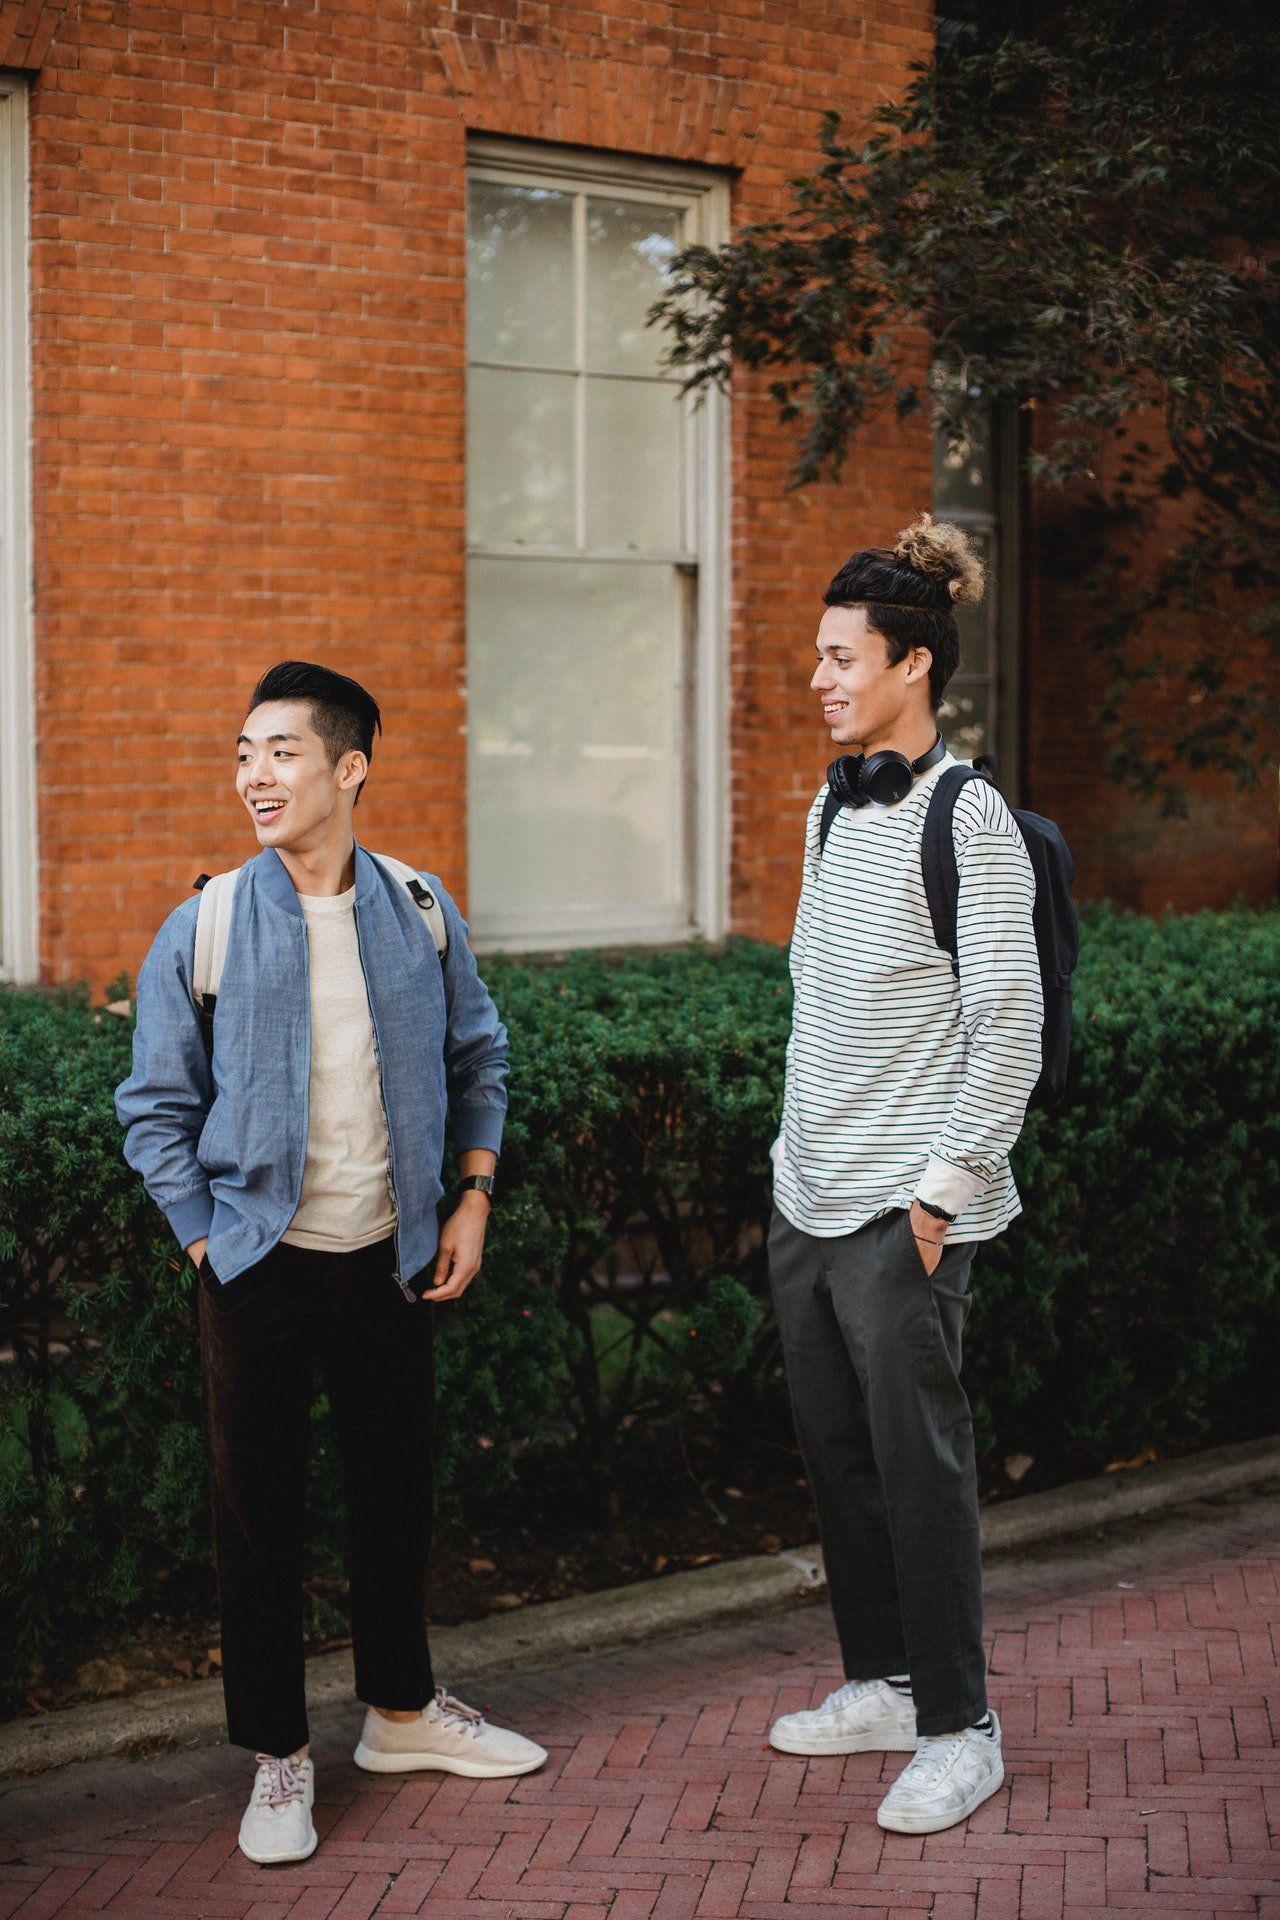 Two students looking at something | Source: Pexels